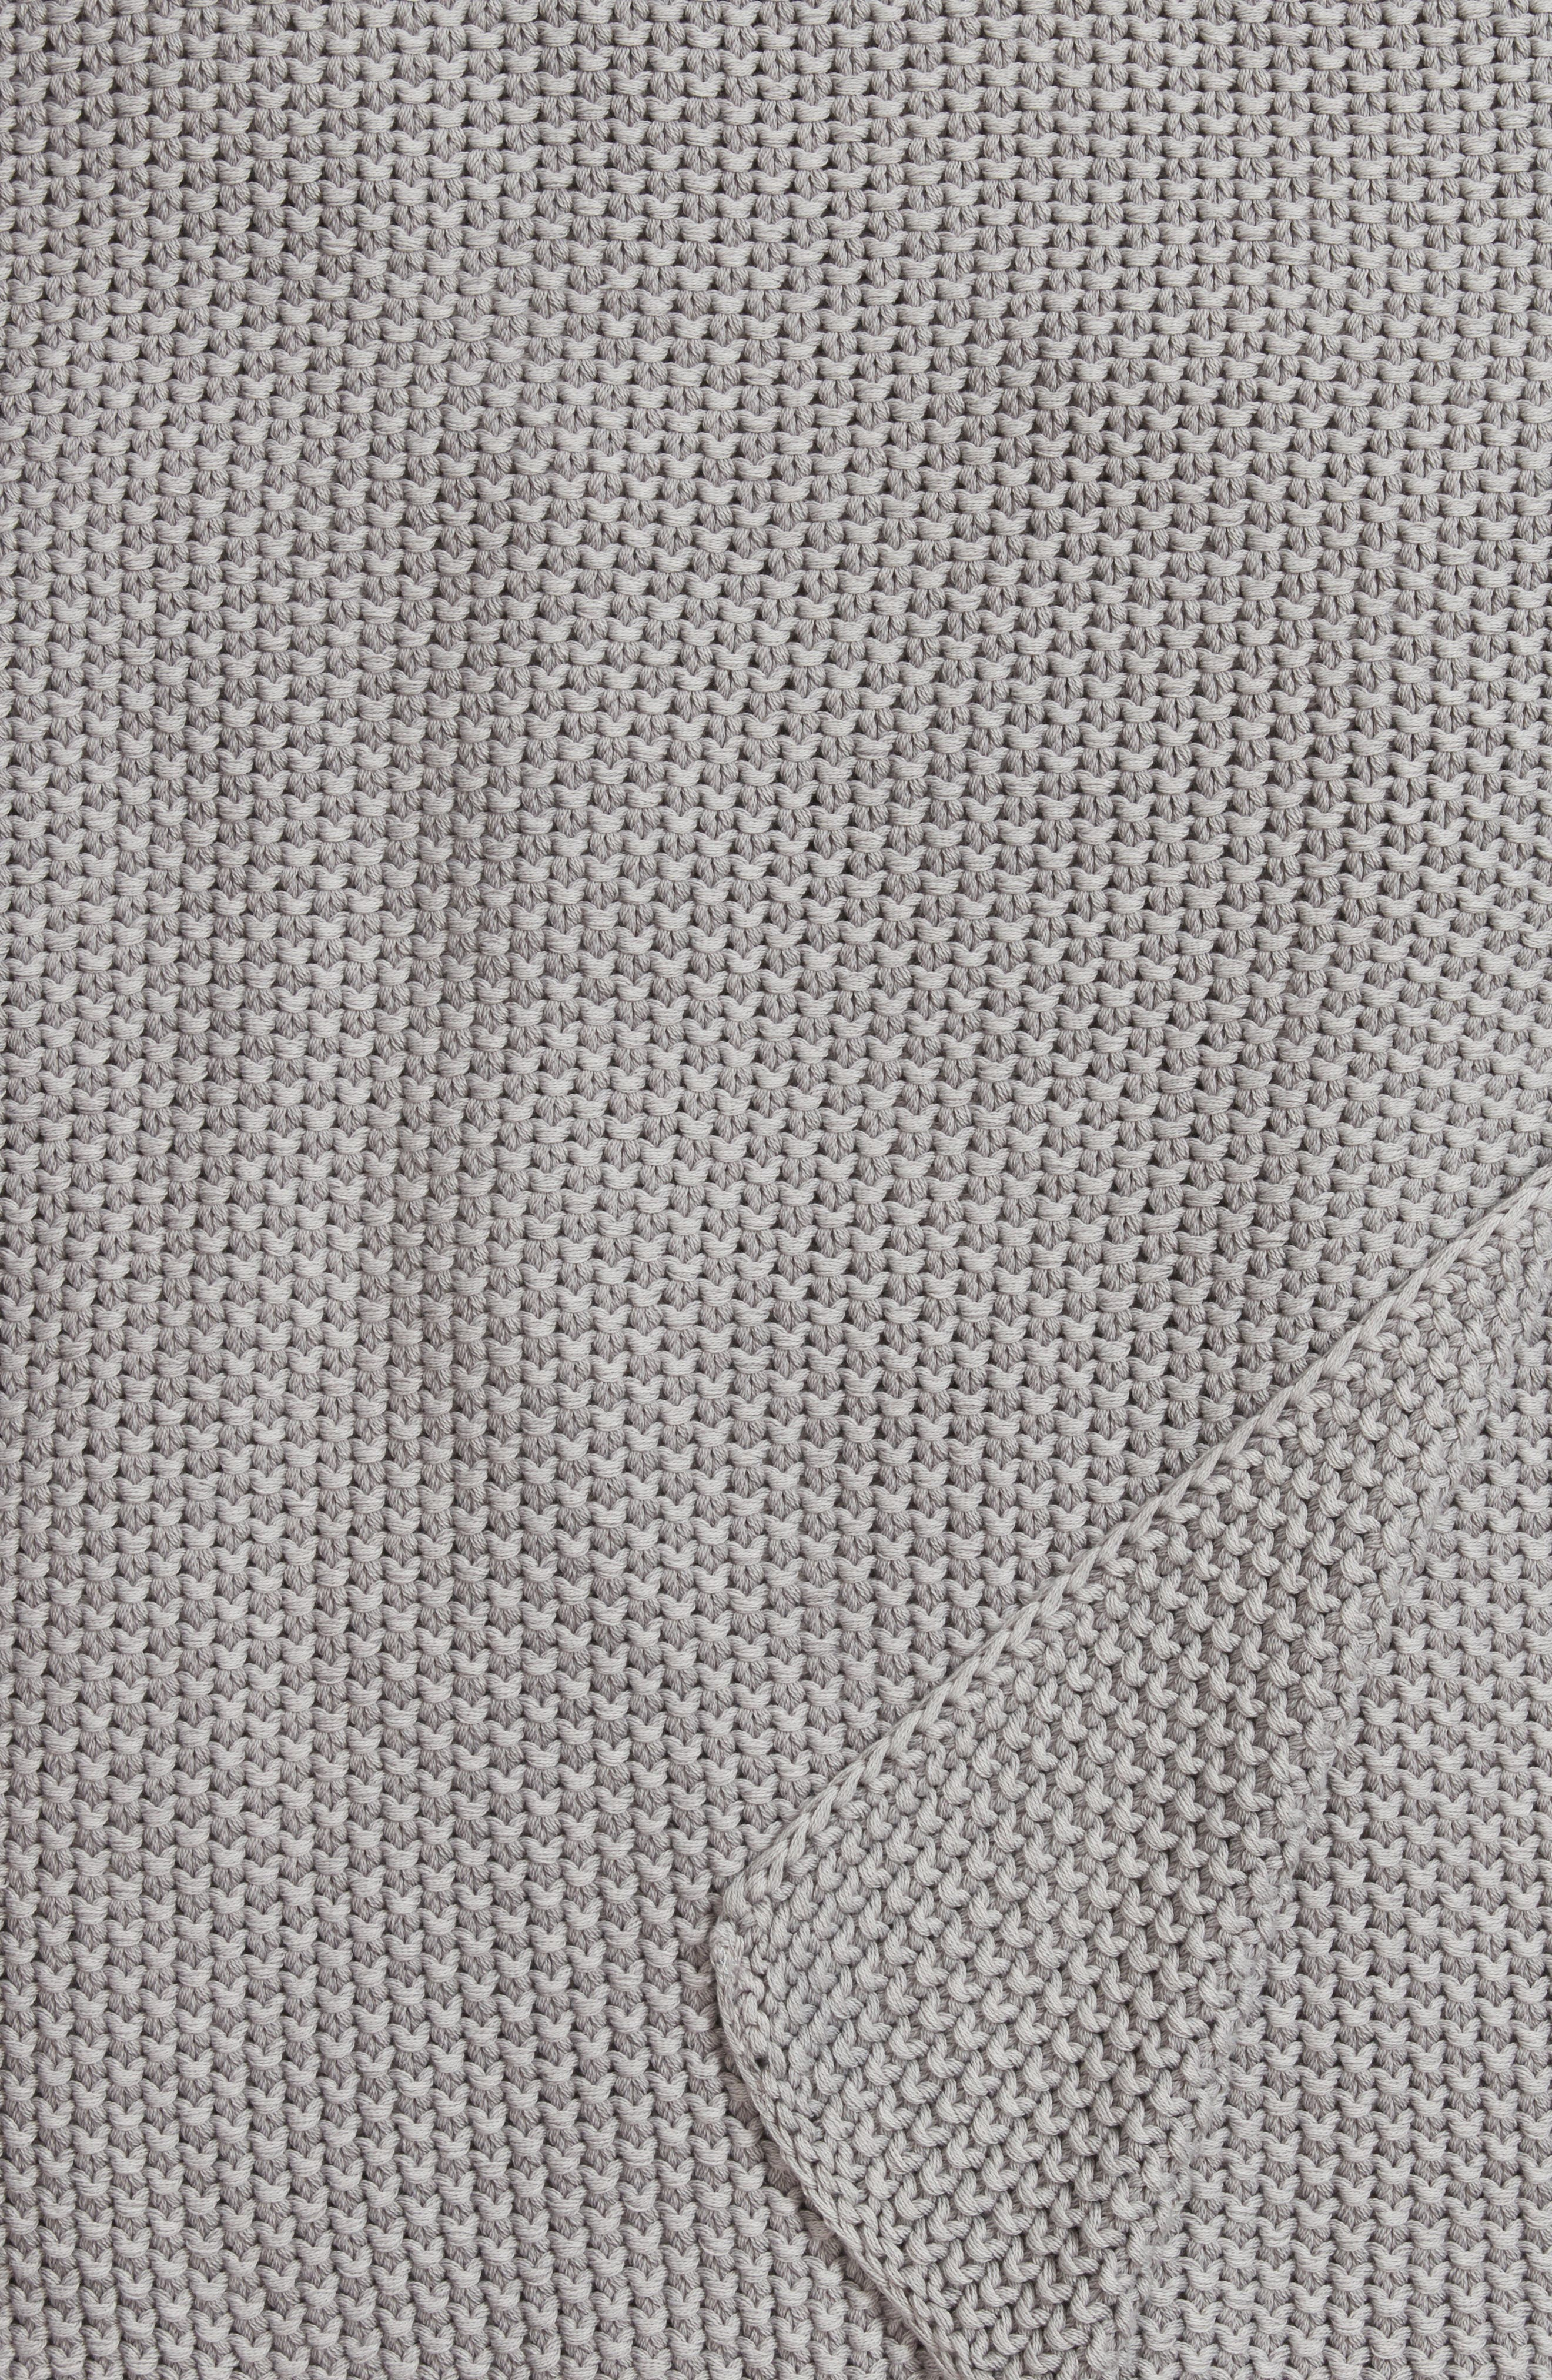 Seed Stitch Throw,                             Alternate thumbnail 2, color,                             Grey Owl